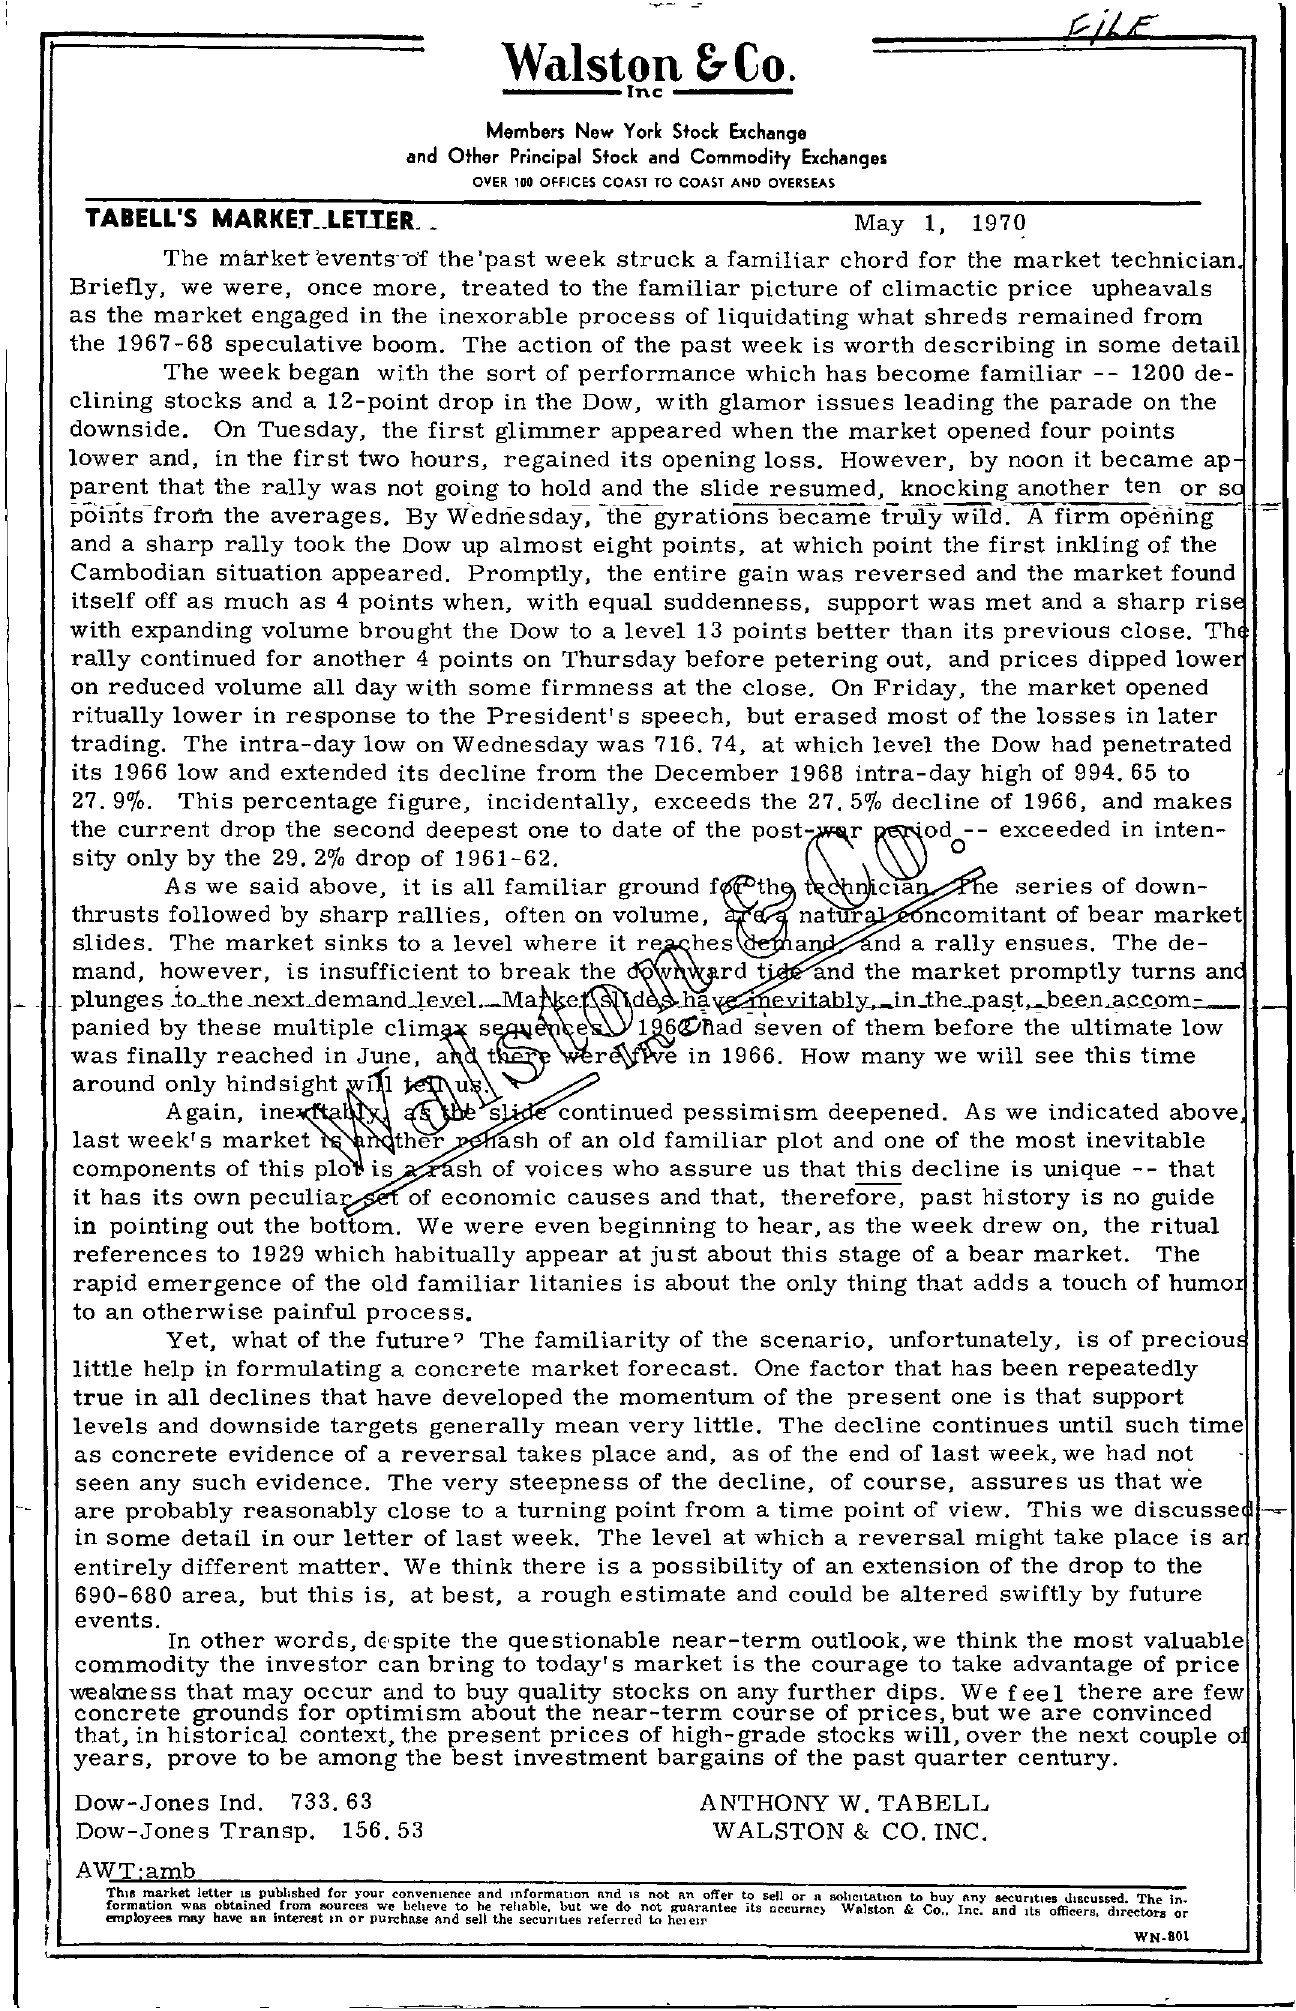 Tabell's Market Letter - May 01, 1970